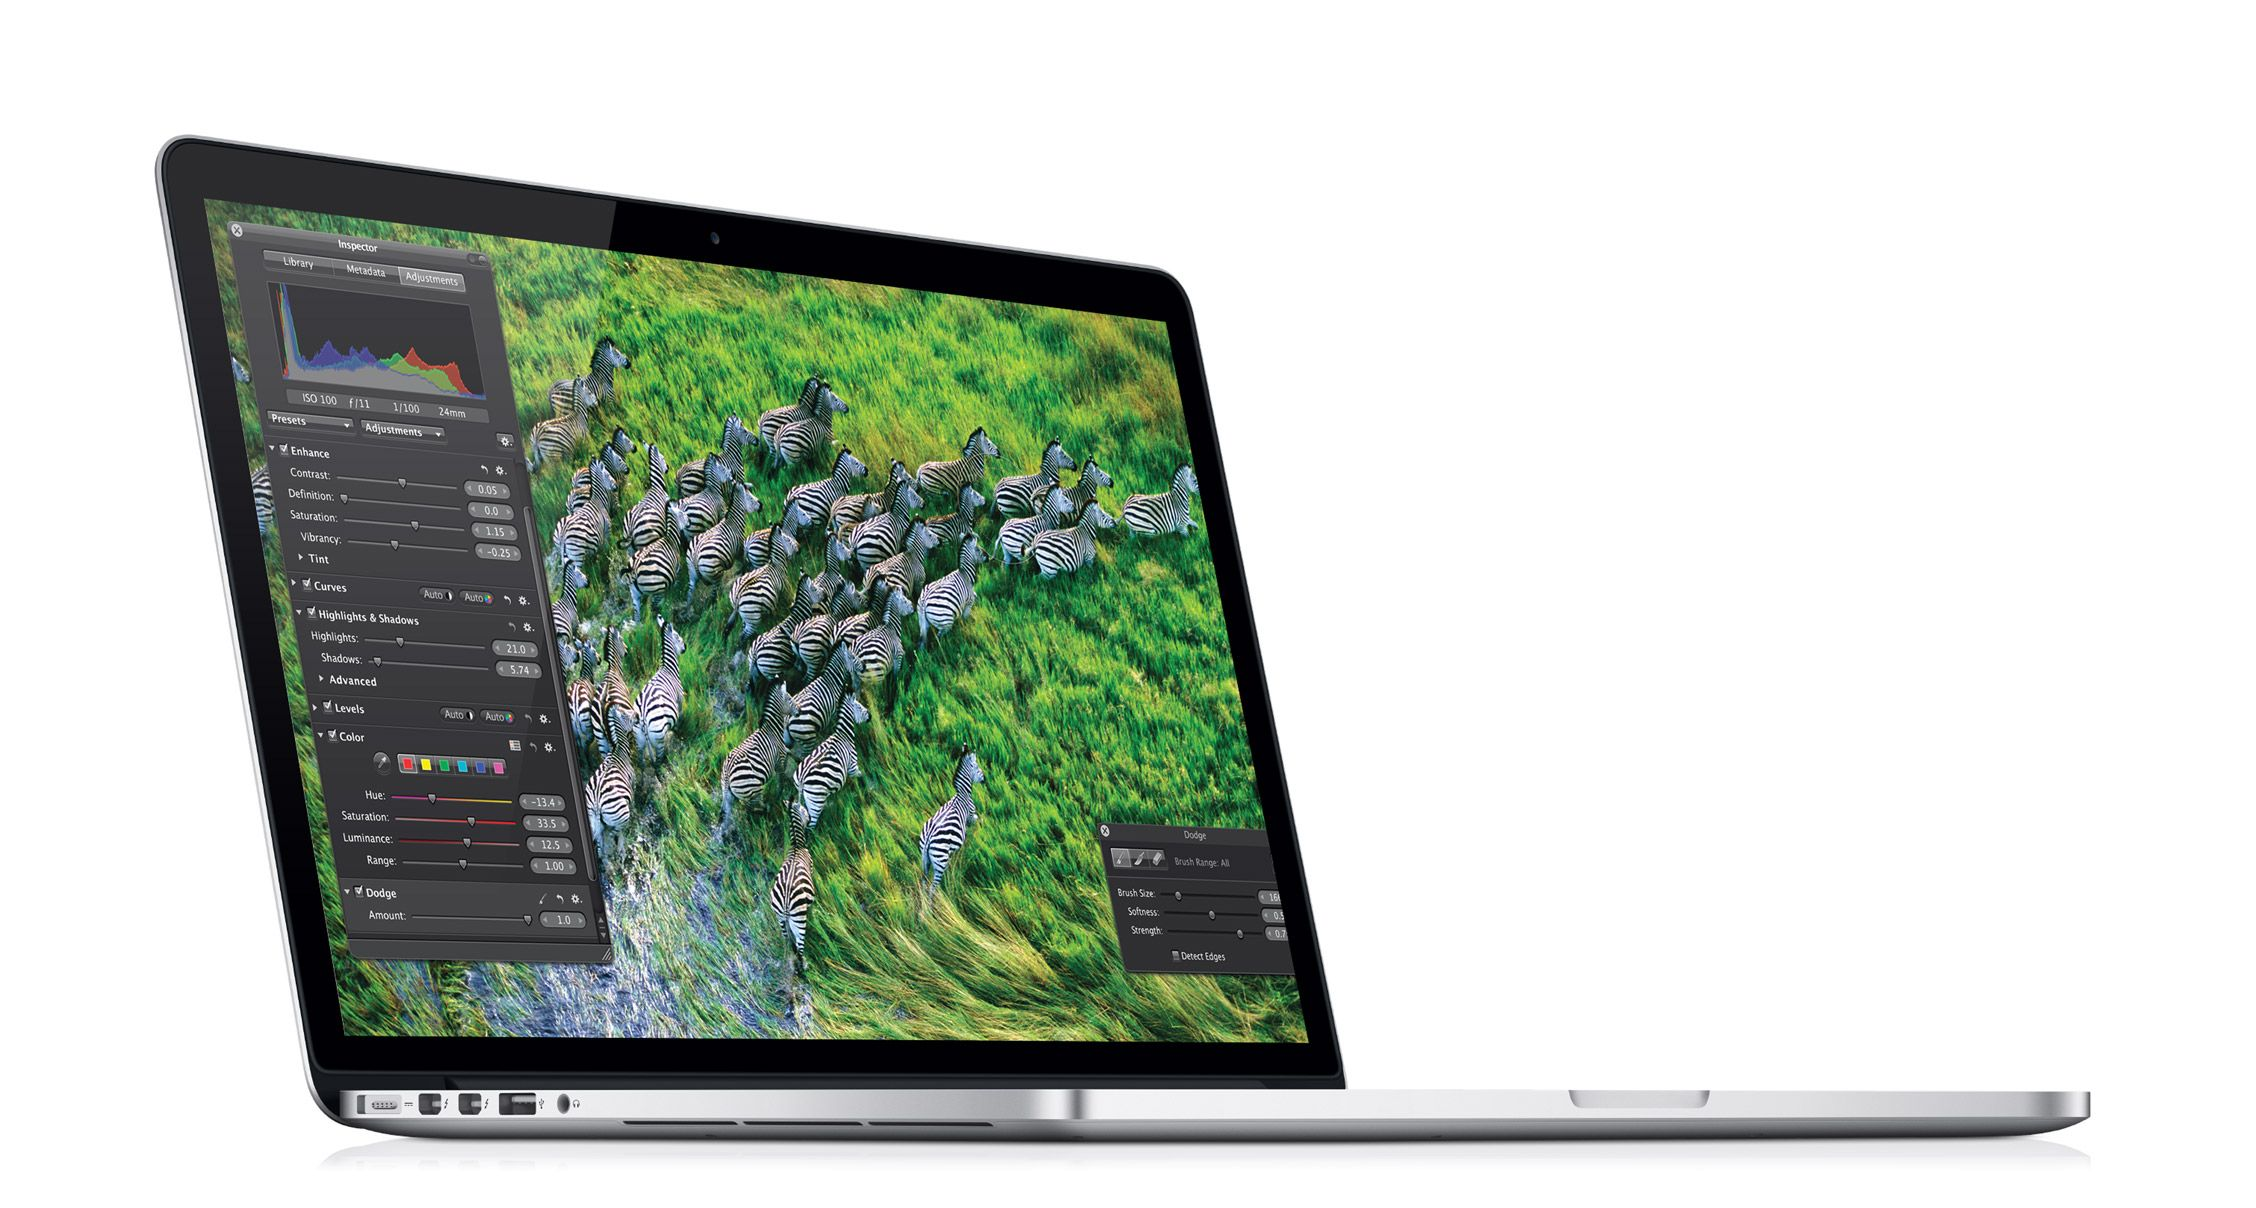 MacBook Pro with Retina Display Tech Gear